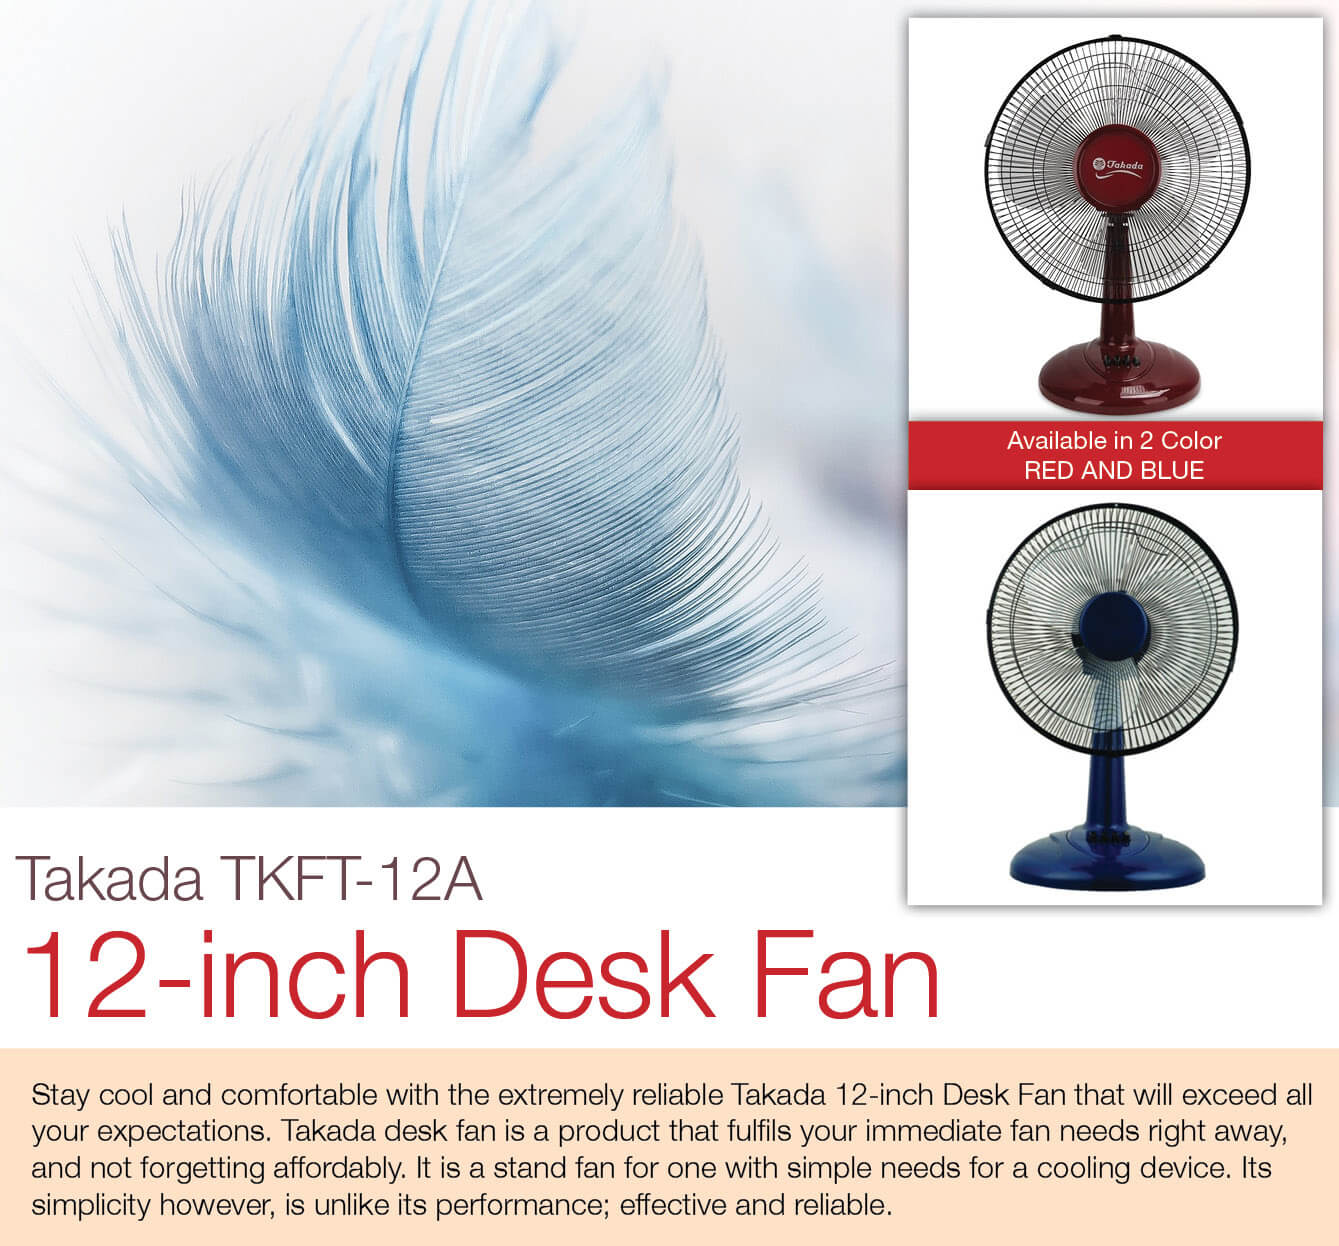 takada-tkft-12a-desk-fan